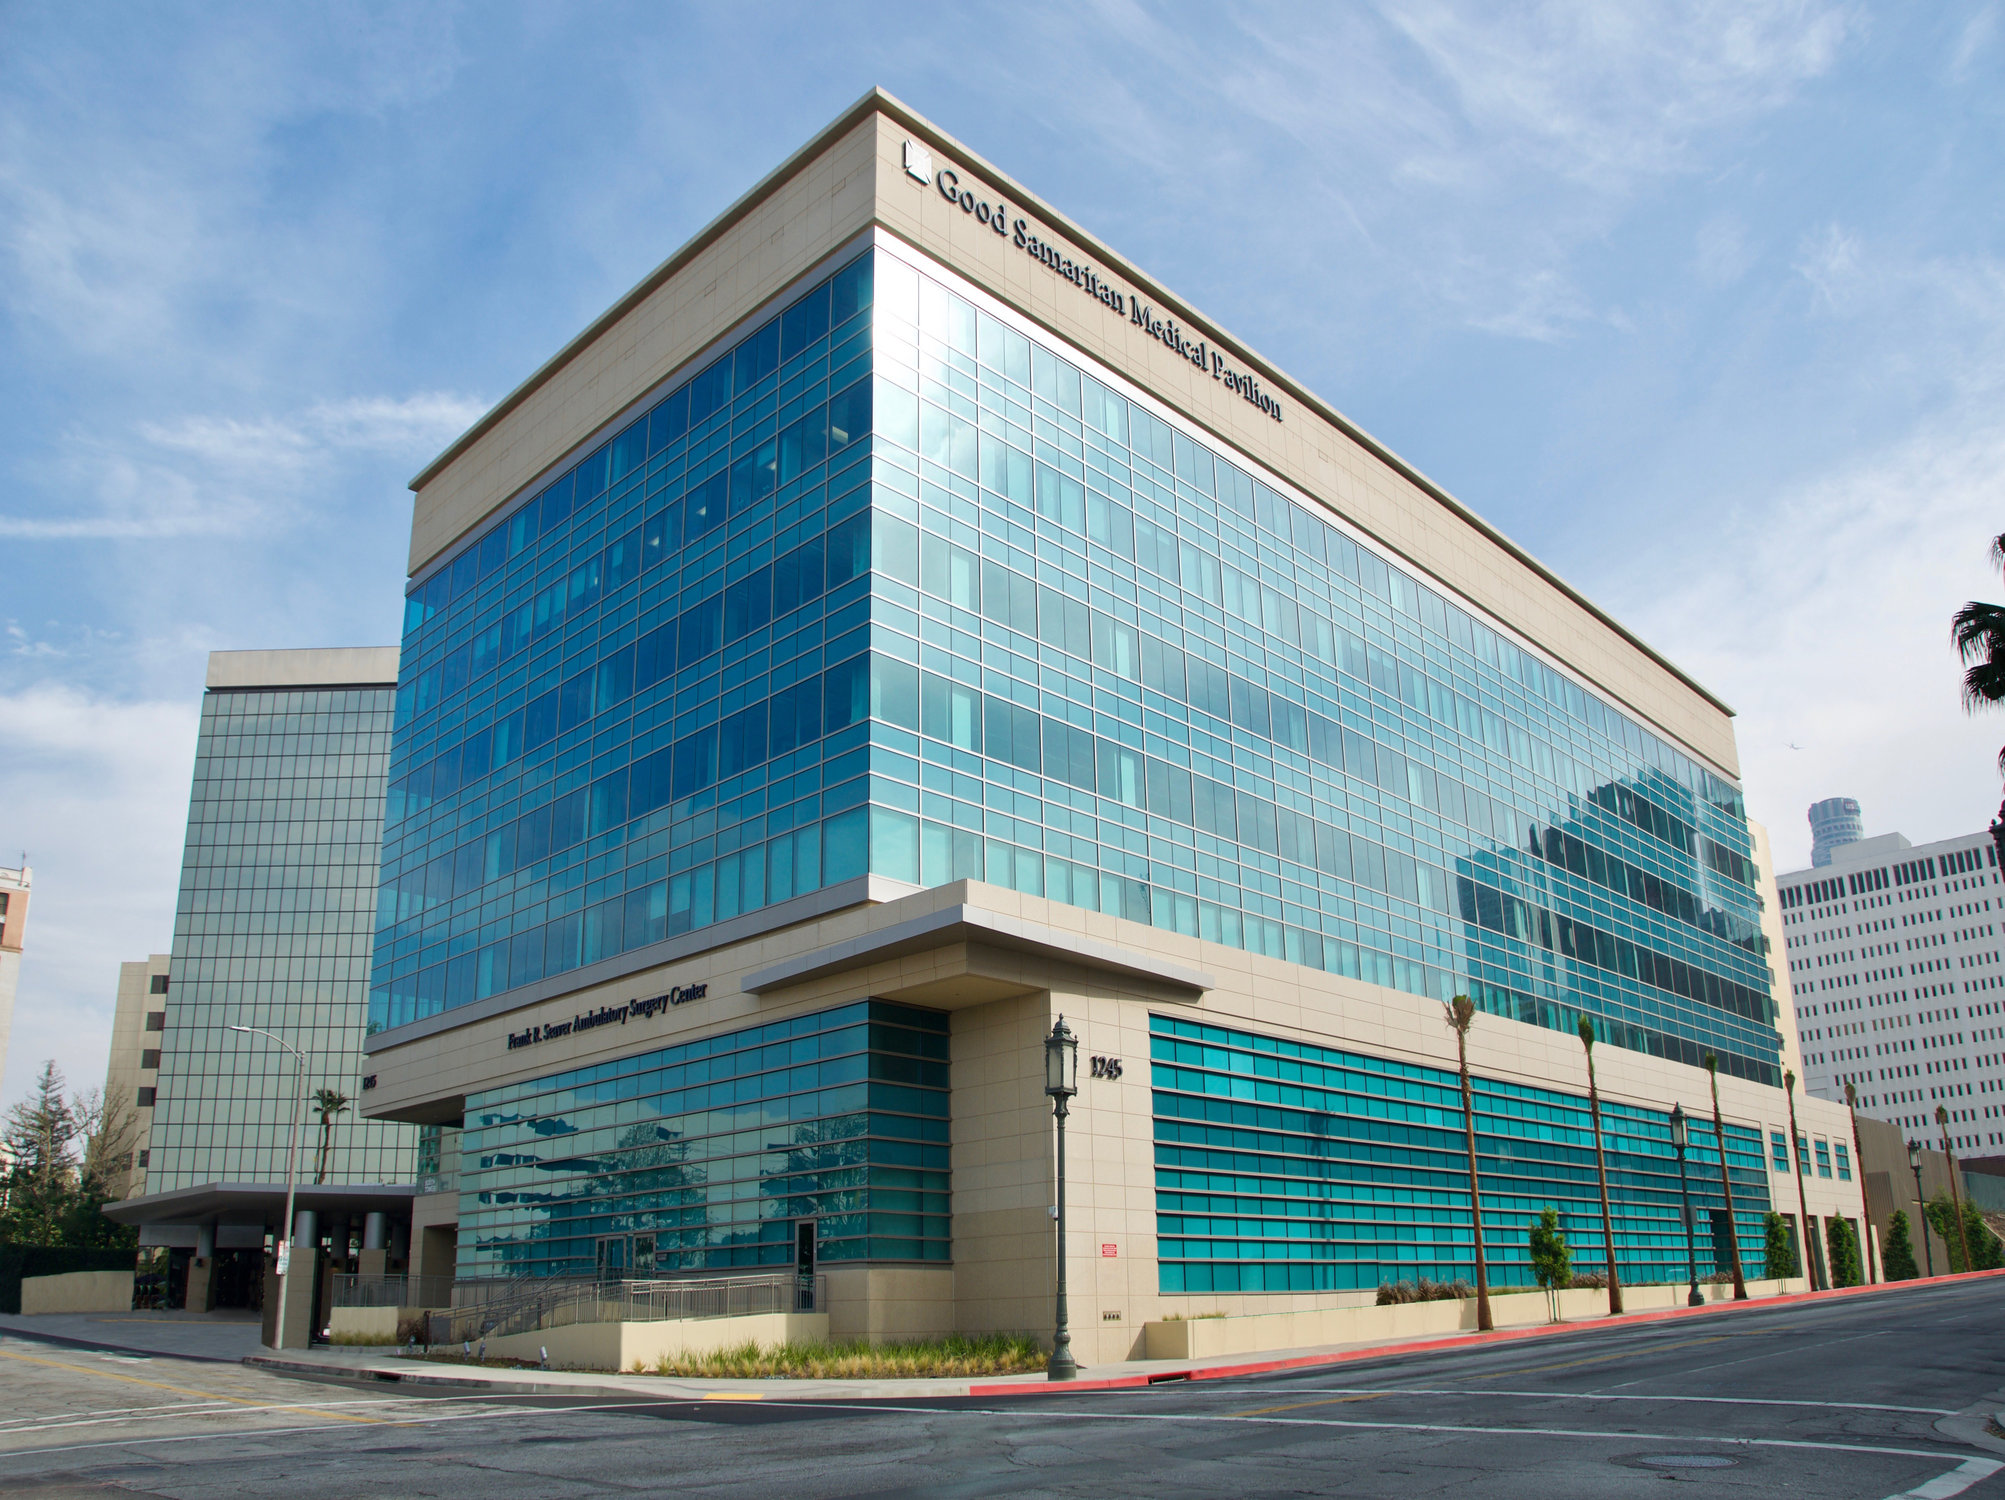 PIH Health Good Samaritan Hospital